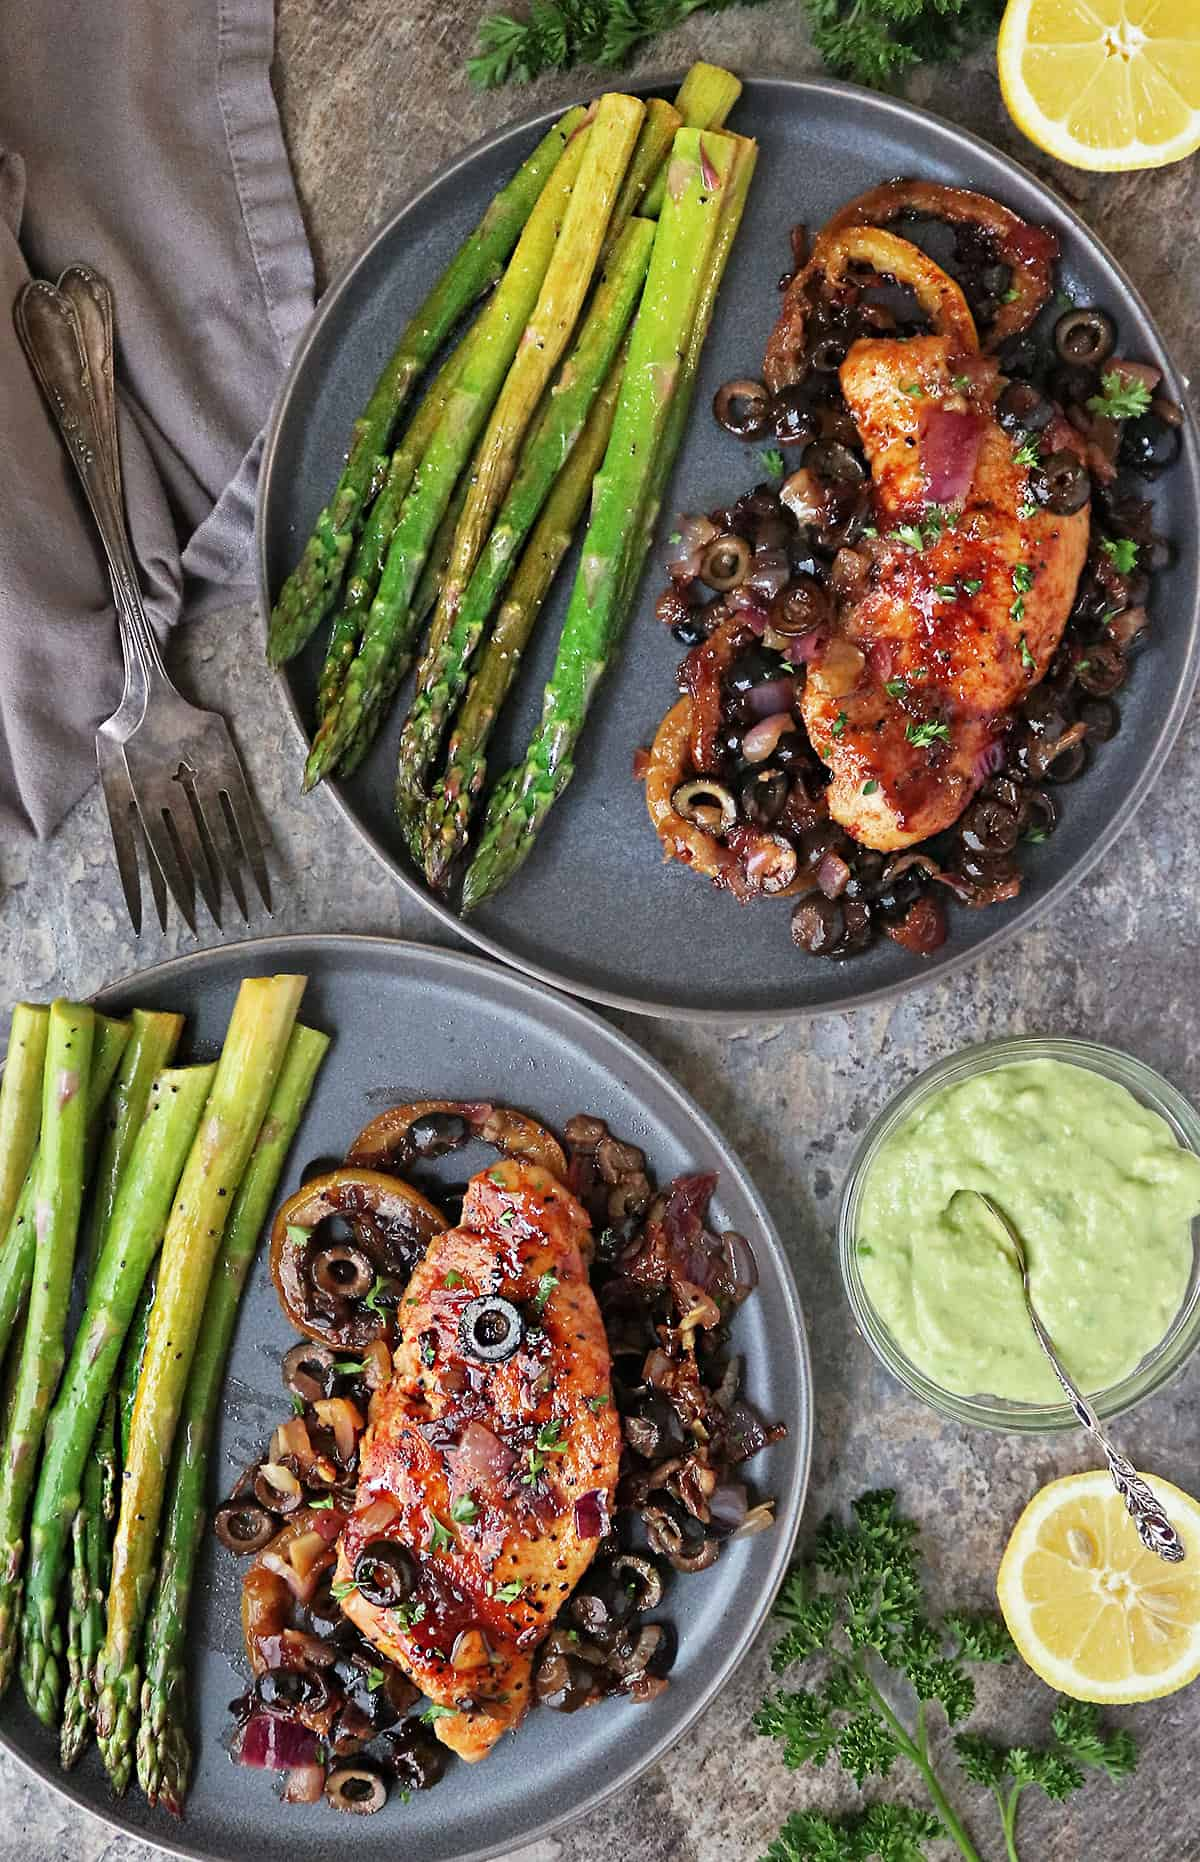 Honey lemon chicken plated with asparagus and wasabi avocado sauce